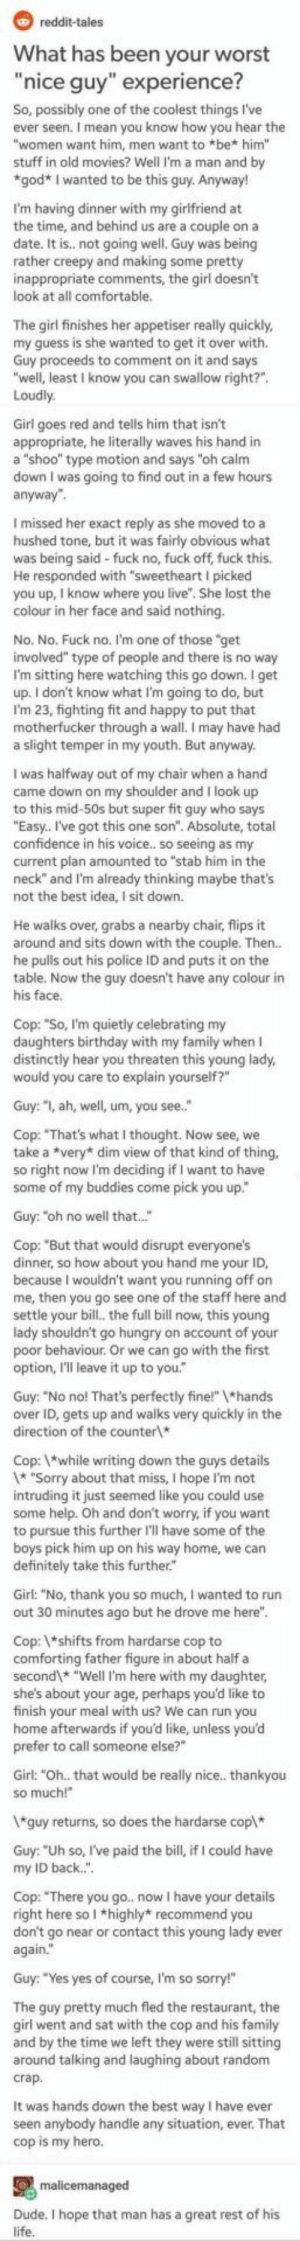 "Wholesome cop via /r/wholesomememes https://ift.tt/2SkCLRT: reddit-tales  What has been your worst  ""nice guy"" experience?  So, possibly one of the coolest things I've  ever seen. I mean you know how you hear the  ""women want him, men want to *be* him""  stuff in old movies? Well I'm a man and by  *god* I wanted to be this guy. Anyway!  I'm having dinner with my girlfriend at  the time, and behind us are a couple on a  not going well. Guy was being  I  rather  inappropriate comments, the girl doesn't  look at all comfortable.  The girl finishes her appetiser really quickly  my guess is she wanted to get it over with.  Guy proceeds to comment on it and says  ""well, least I know you can swallow right?""  Loudly  Girl goes red and tells him that isn't  appropriate, he literally waves his hand in  a ""shoo"" type motion and says ""oh calm  down I was going to find out in a few hours  anyway""  I missed her exact re  as she moved to a  hushed tone, but it was fairly obvious what  was being said-fuck no, fuck off, fuck this.  He responded with ""sweetheart I picked  lost the  colour in her face and said nothing.  No. No. Fuck no. I'm one of those ""get  involved"" type of people and there is no way  I'm sitting here watching this go down. I get  up. I don't know what I'm going to do, but  I'm 23, fighting fit and happy to put that  motherfucker through a wall. I may have had  a slight temper in my youth. But anyway.  I was halfway out of my chair when a hand  came down on my shoulder and I look up  to this mid-50s but super fit guy who says  ""Easy. I've got this one son"". Absolute, total  confidence in his voice.. so seeing as my  current plan amounted to ""stab him in the  neck"" and I'm already thinking maybe that's  not the best idea, I sit down.  He walks over, grabs a nearby chair, flips it  around and sits down with the couple. Then..  he pulls out his police ID and puts it on the  table. Now the guy doesn't have any colour in  his face  Cop: ""So, I'm quietly celebrating my  daughters birthday with my family when I  distinctly hear you threaten this young lady,  would you care to explain yourself?""  Guy: ""I, ah, well, um, you see.  Cop: ""That's what I thought. Now see, we  take a *very* dim view of that kind of thing,  so right now I'm deciding if I want to have  some of my buddies come pick you up""  Guy: ""oh no well that...""  Cop: ""But that would disrupt everyone's  dinner, so how about you hand me your ID,  me, the dn't want yhe staff here and  settle your bill., the full bill now, this young  lady shouldn't go hungry on account of your  poor behaviour. Or we can go with the first  option, I'll leave it up to you.  Guy: ""No no! That's perfectly fine!"" 1*hands  over ID, gets up and walks very quickly in the  direction of the counter  Cop: while writing down the guys details  1* ""Sorry about that miss, I hope I'm not  intruding it just seemed like you could use  some help. Oh and don't worry, if you want  to pursue this further I'll have some of the  boys pick him up on his way home, we can  definitely take this further.  Girl: ""No, thank you so much, I wanted to run  out 30 minutes ago but he drove me here"".  Cop: *shifts from hardarse cop to  comforting father figure in about half a  second* ""Well I'm here with my daughter,  she's about your age, perhaps you'd like to  finish your meal with us? We can run you  home afterwards if you'd like, unless you'd  prefer to call someone else?""  Girl: ""Oh.. that would be really nice.. thankyou  so much!  *guy returns, so does the hardarse cop*  Guy: ""Uh so, I've paid the bill, if I could have  back."".  my  Cop: ""There you go. now I have your details  right here so I *highly* recommend you  don't go near or contact this young lady ever  again.  Guy: ""Yes yes of course, I'm so sorry!""  The quy pretty much fled the restaurant, the  qirl went and sat with the cop and his family  and by the time we left they were still sitting  around talking and laughing about random  crap.  It was hands down the best way I have ever  seen anybody handle any situation, ever. That  cop is my hero.  malicemanaged  Dude. I hope that man has a great rest of his  life. Wholesome cop via /r/wholesomememes https://ift.tt/2SkCLRT"